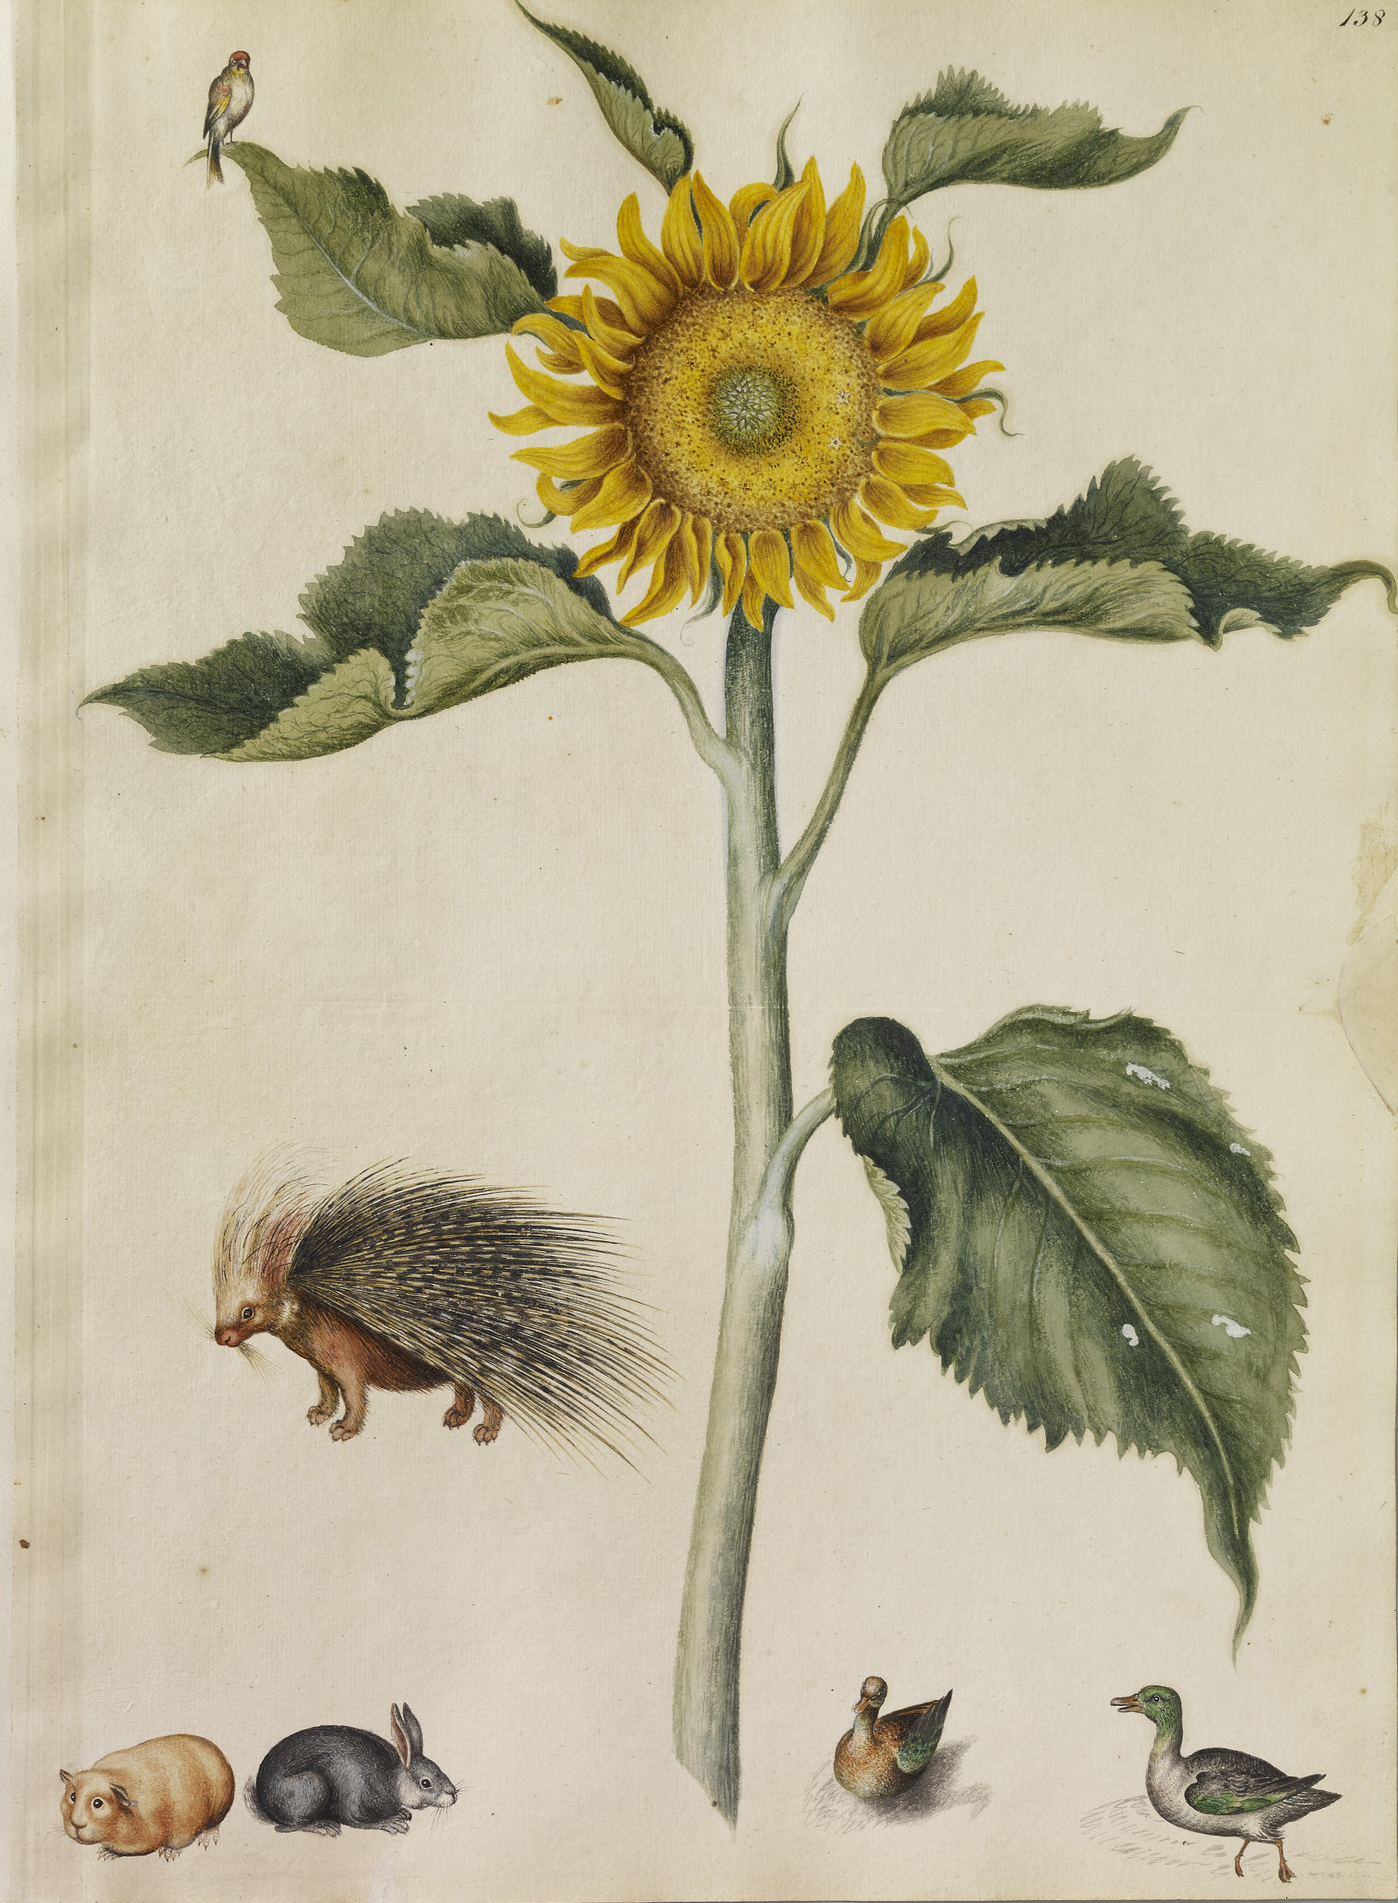 A Sunflower, a Porcupine, Rabbit, Guinea-Pig, Two Ducks and a Goldfinch